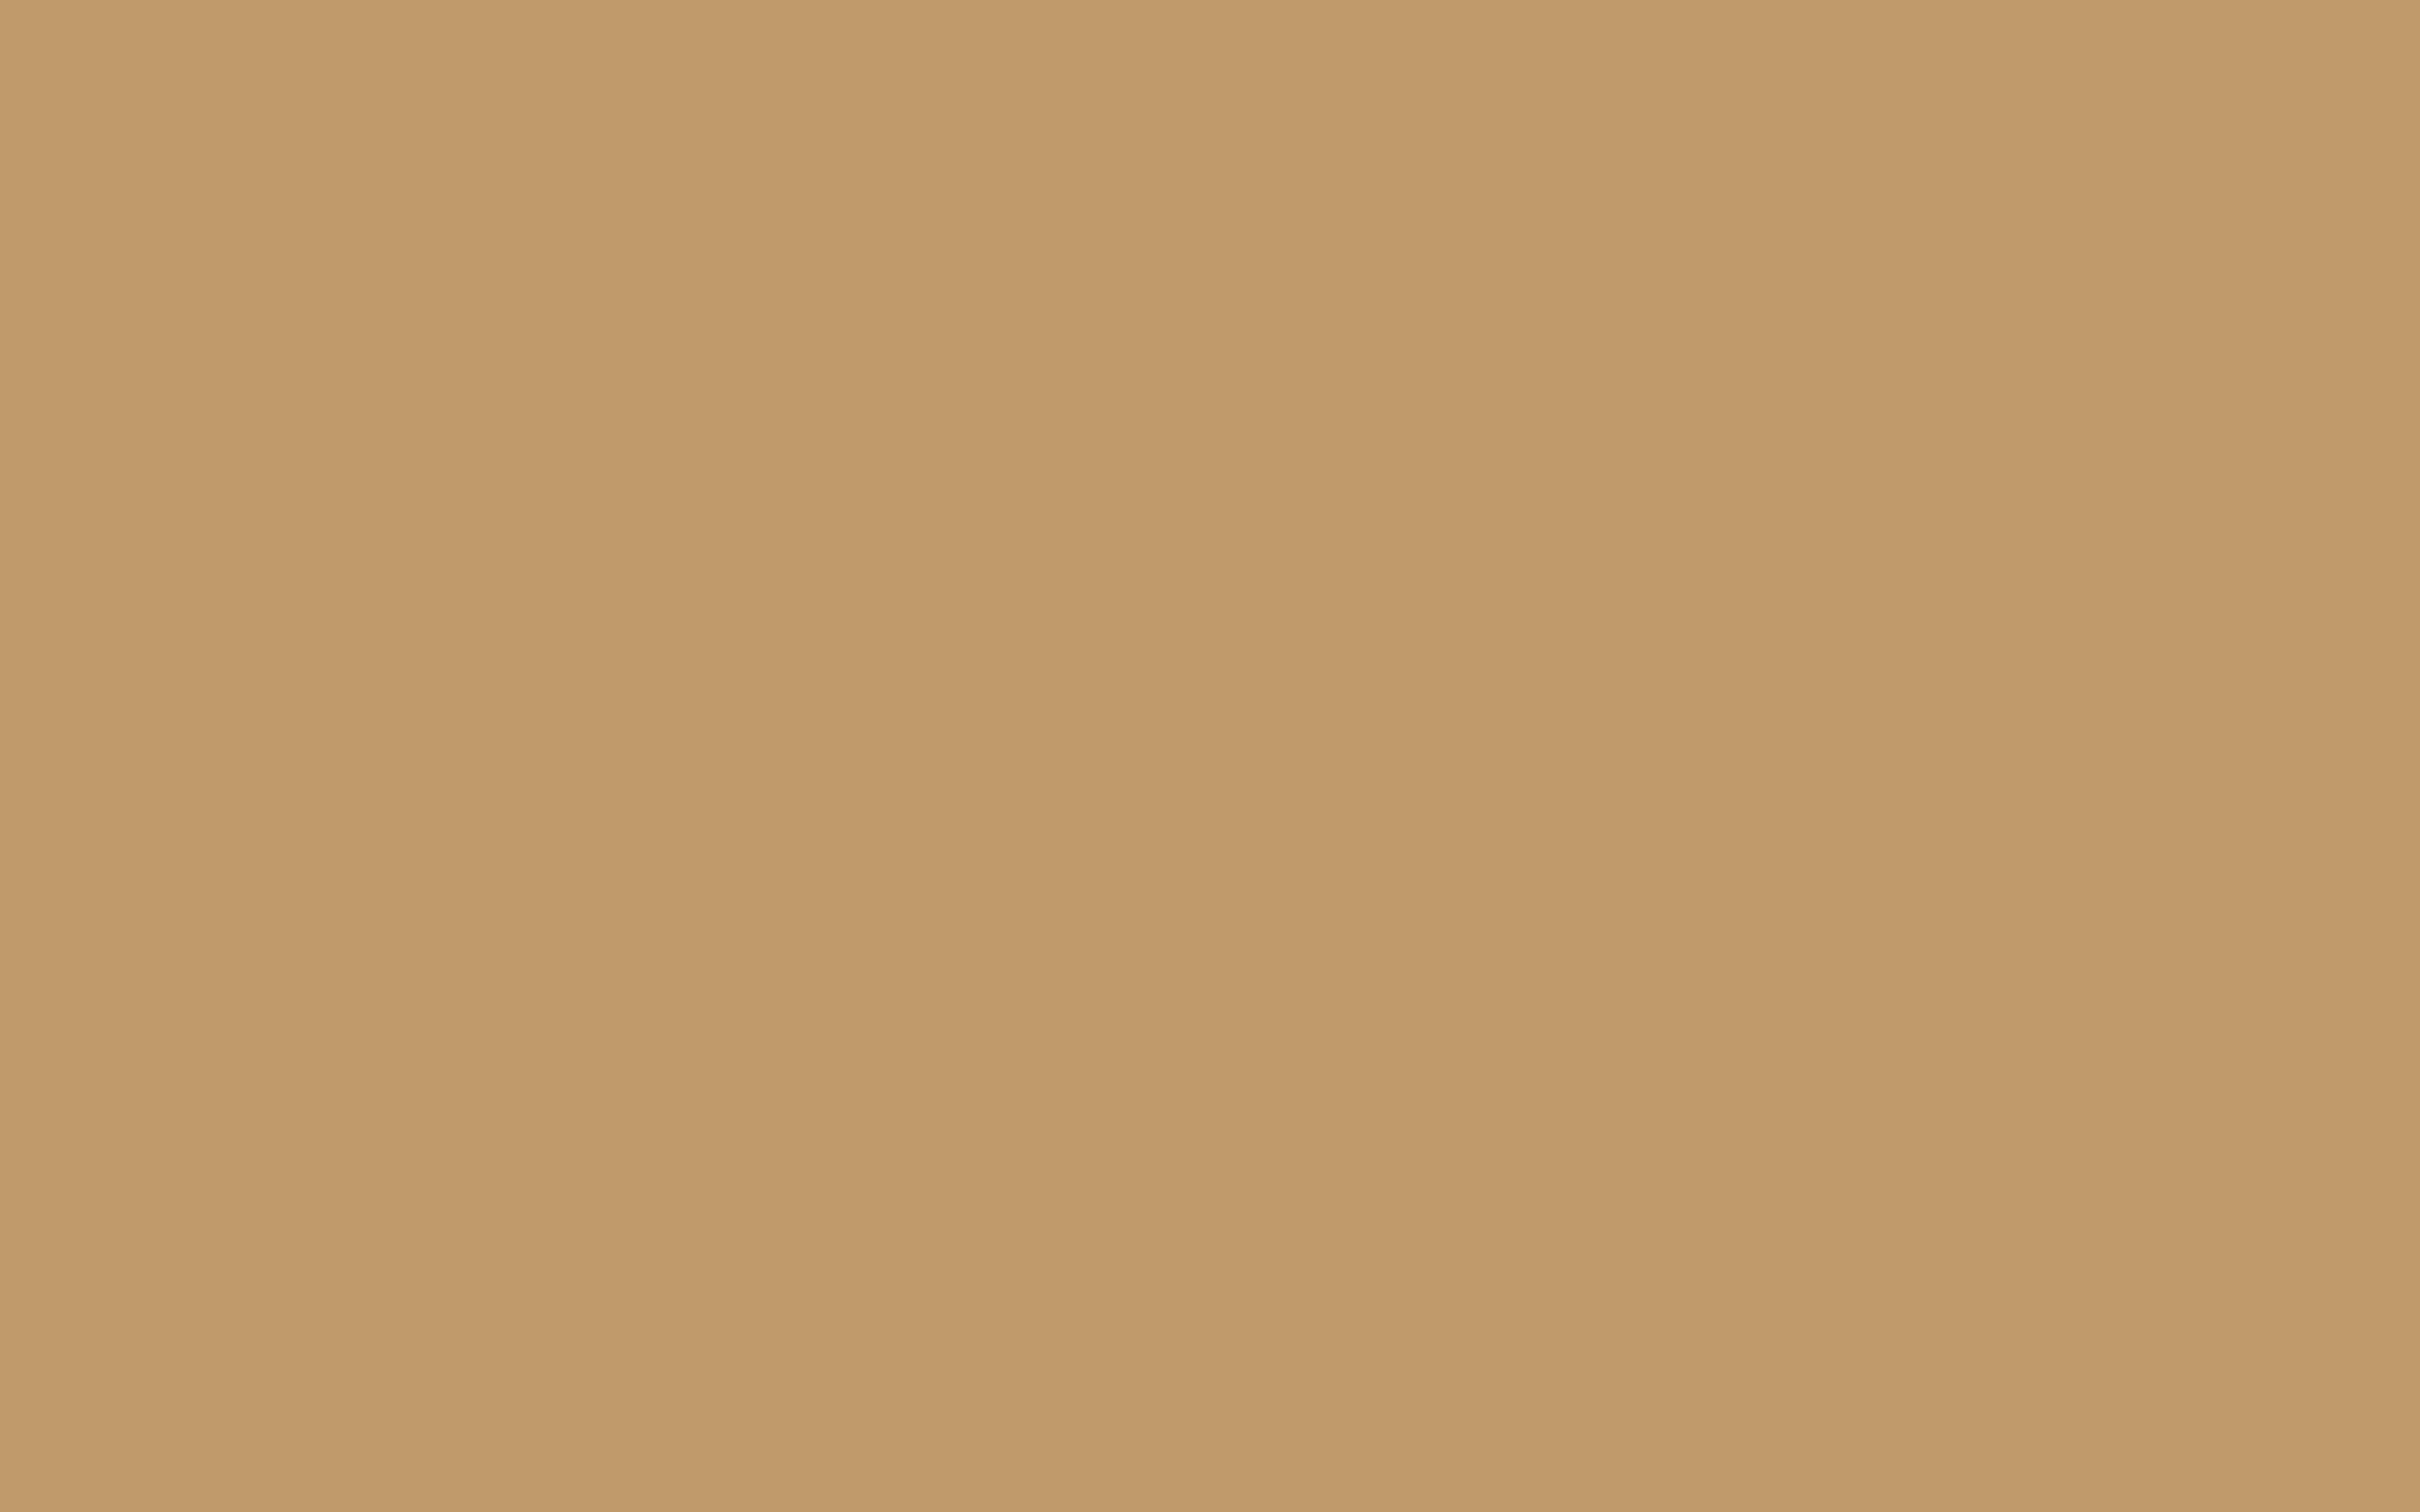 2560x1600 Wood Brown Solid Color Background